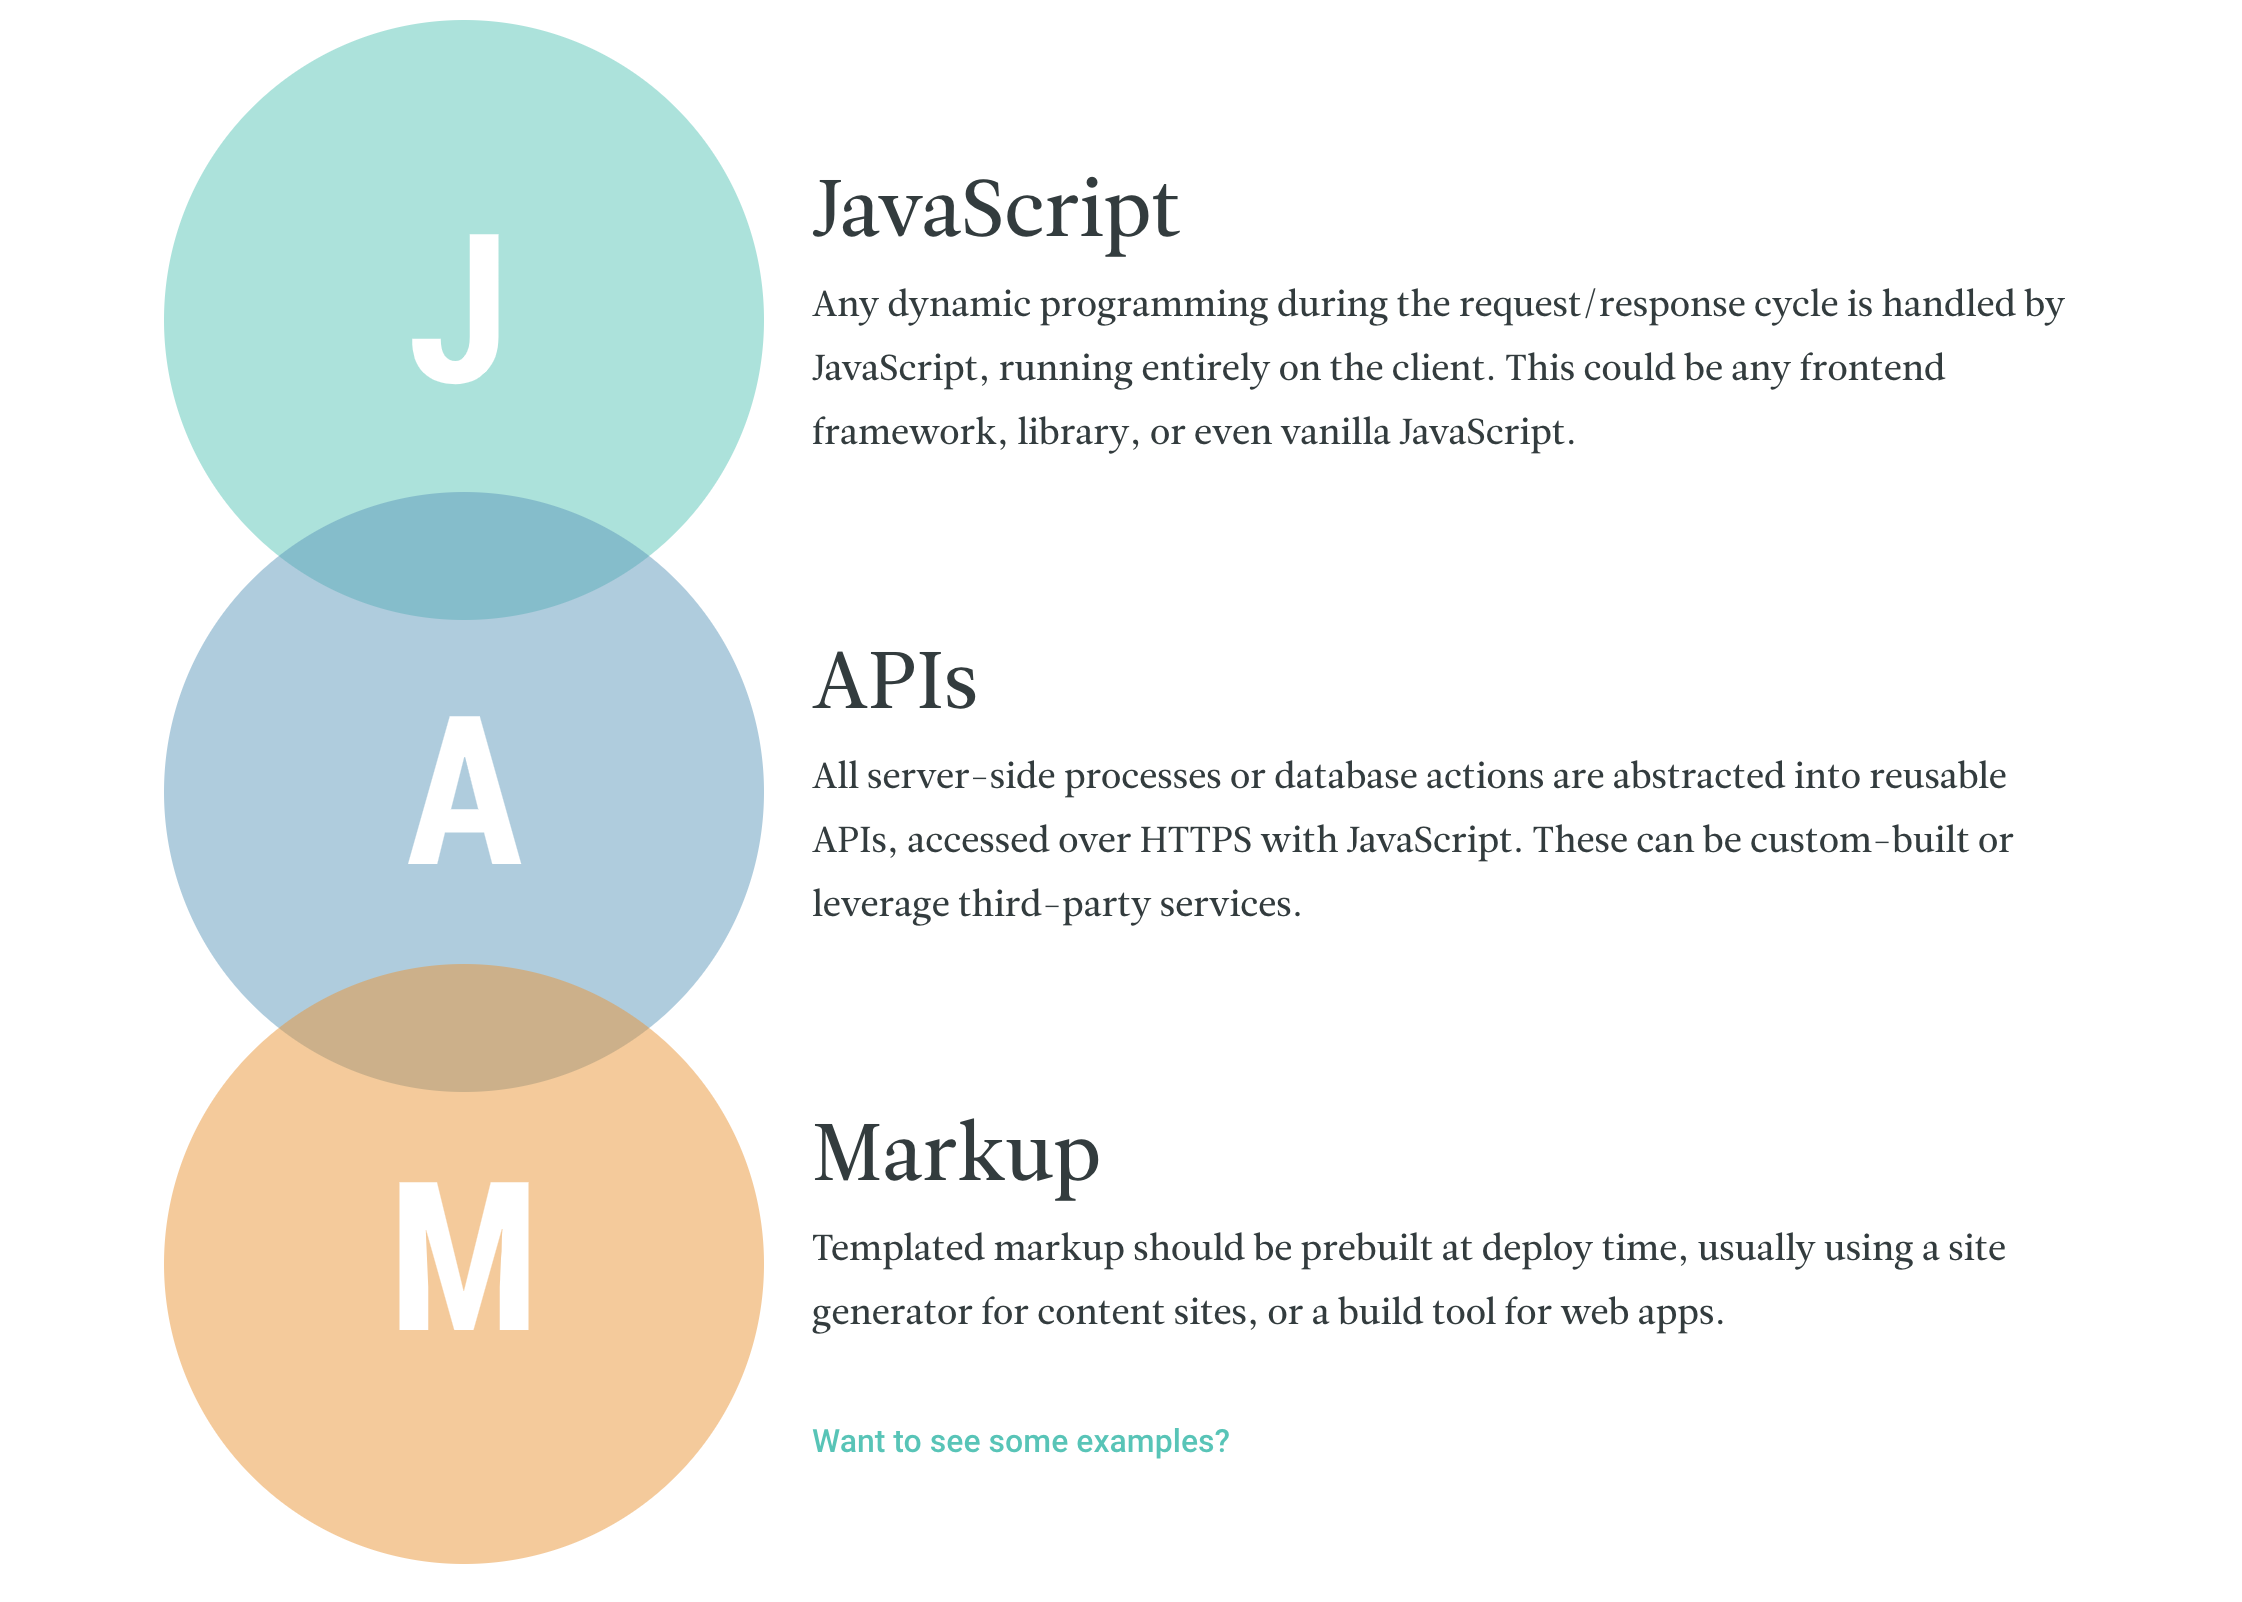 Snapshot from https://JAMstack.org/ breaking down the JAMstack